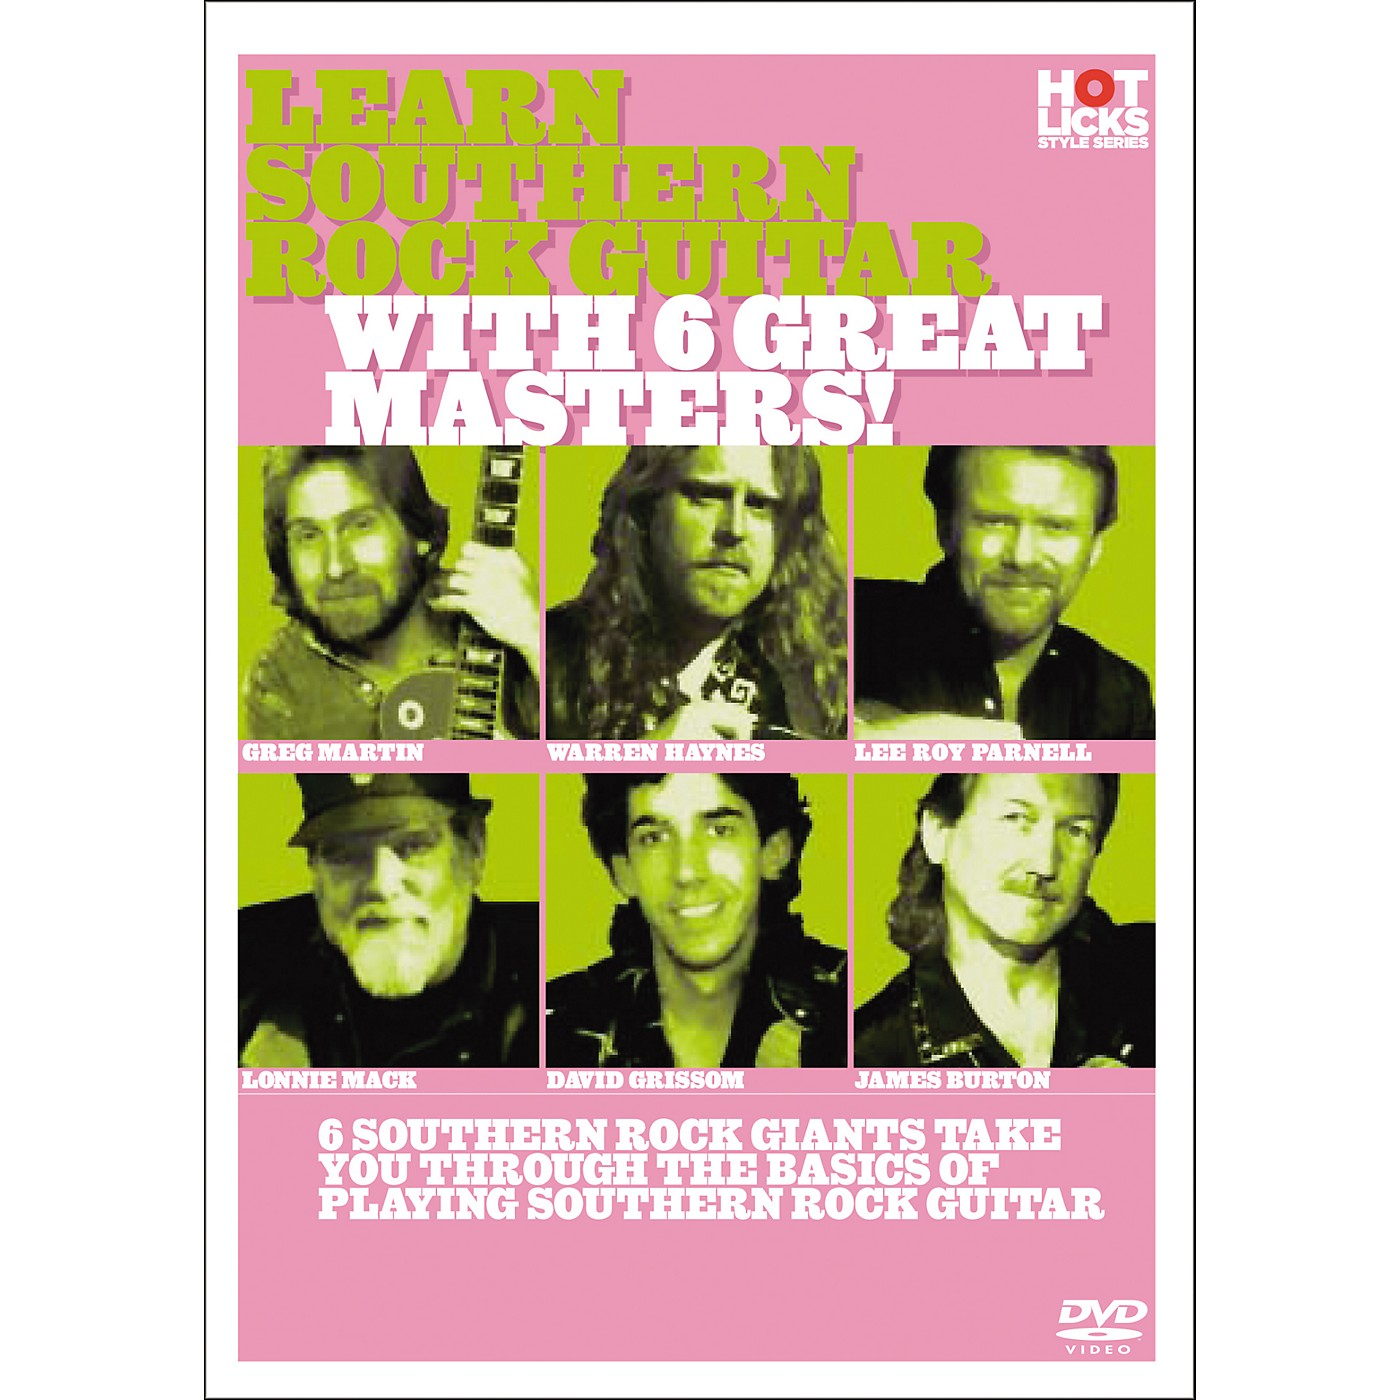 Hot Licks Learn Southern Rock Guitar with 6 great Masters thumbnail